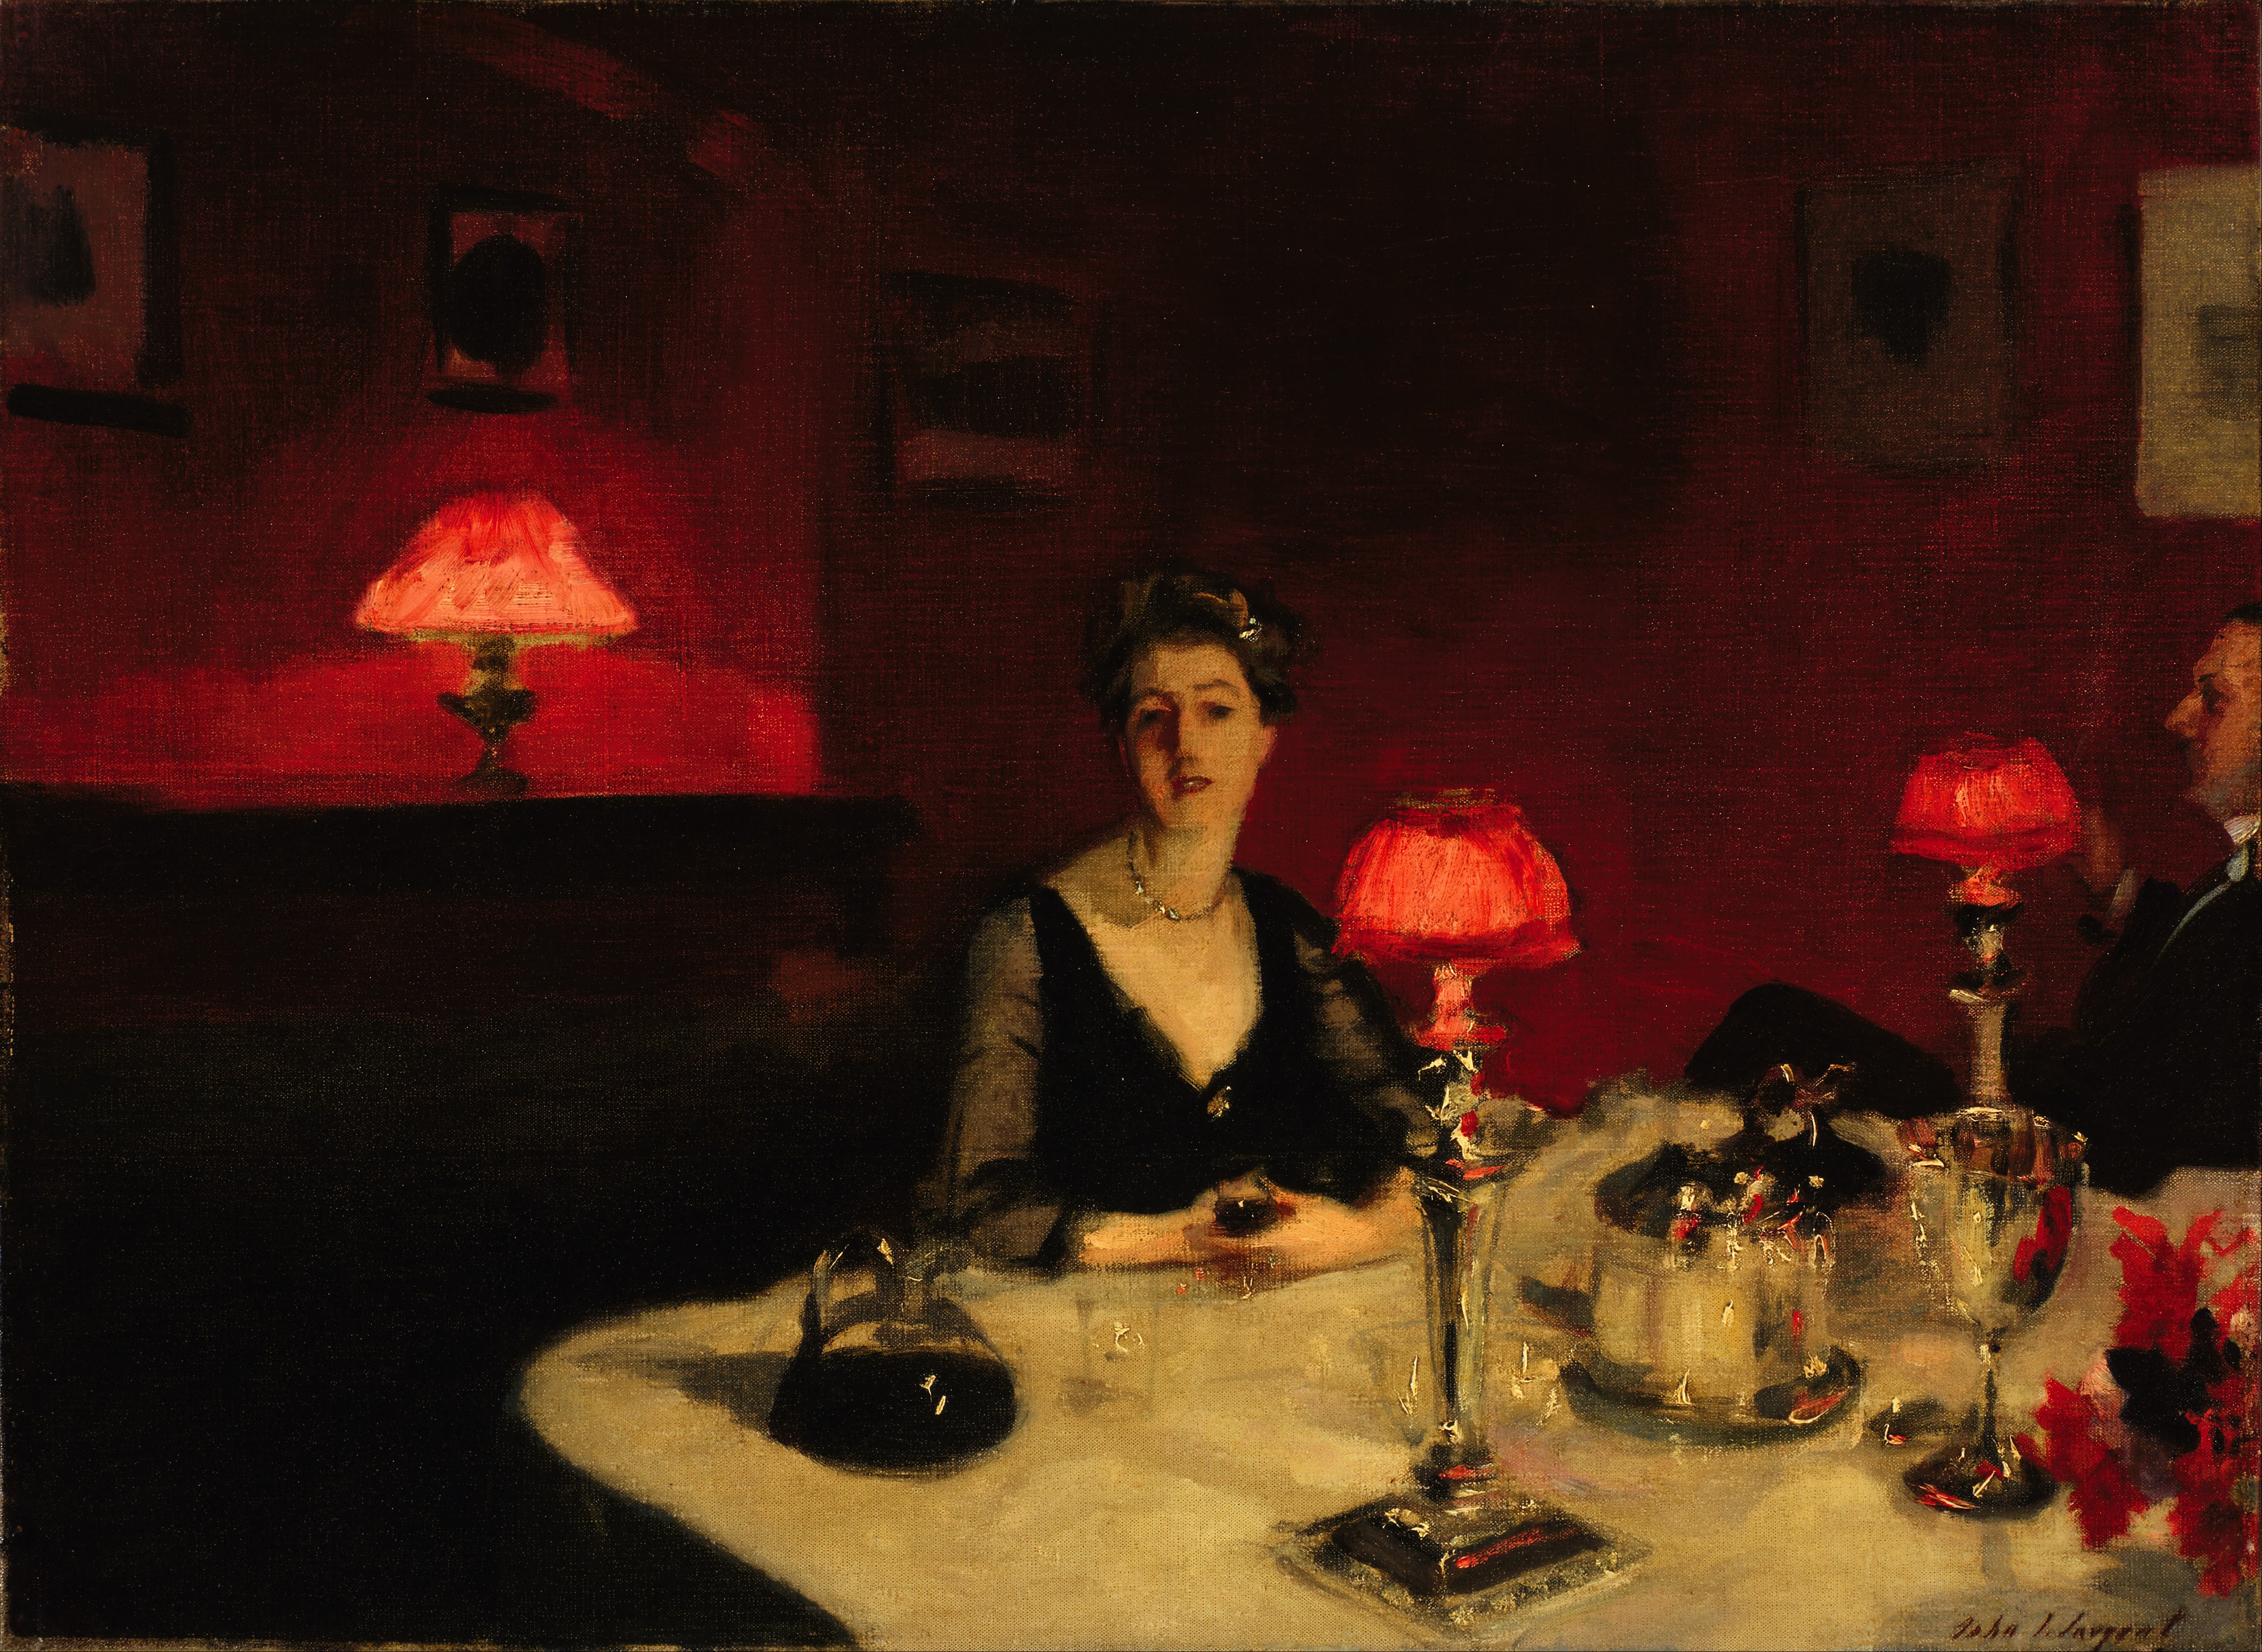 John_Singer_Sargent_-_Le_verre_de_porto_(A_Dinner_Table_at_Night)_-_Google_Art_Project